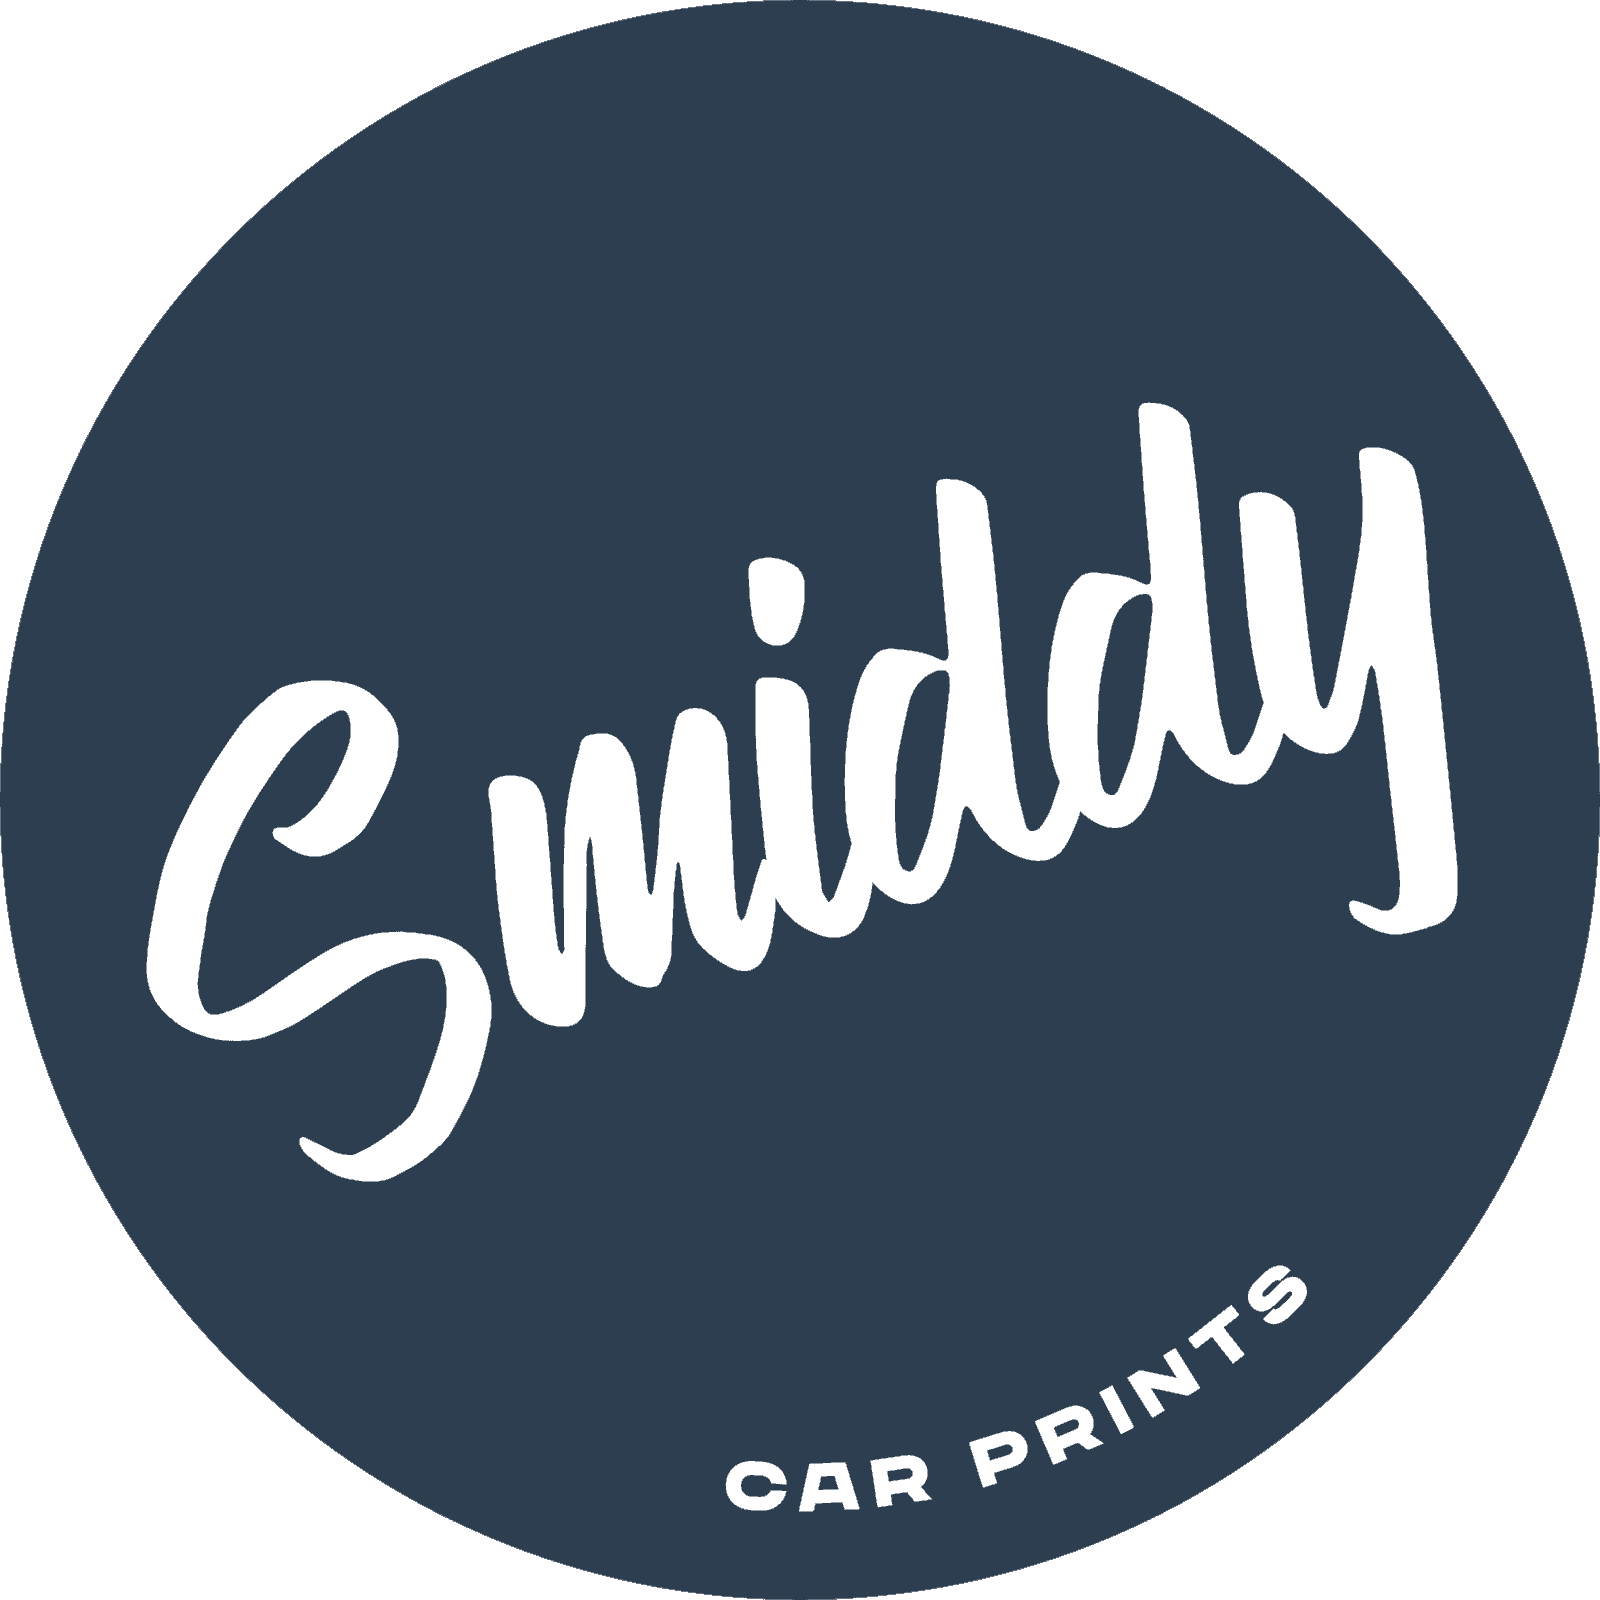 The GPBox - Smiddy Car Prints